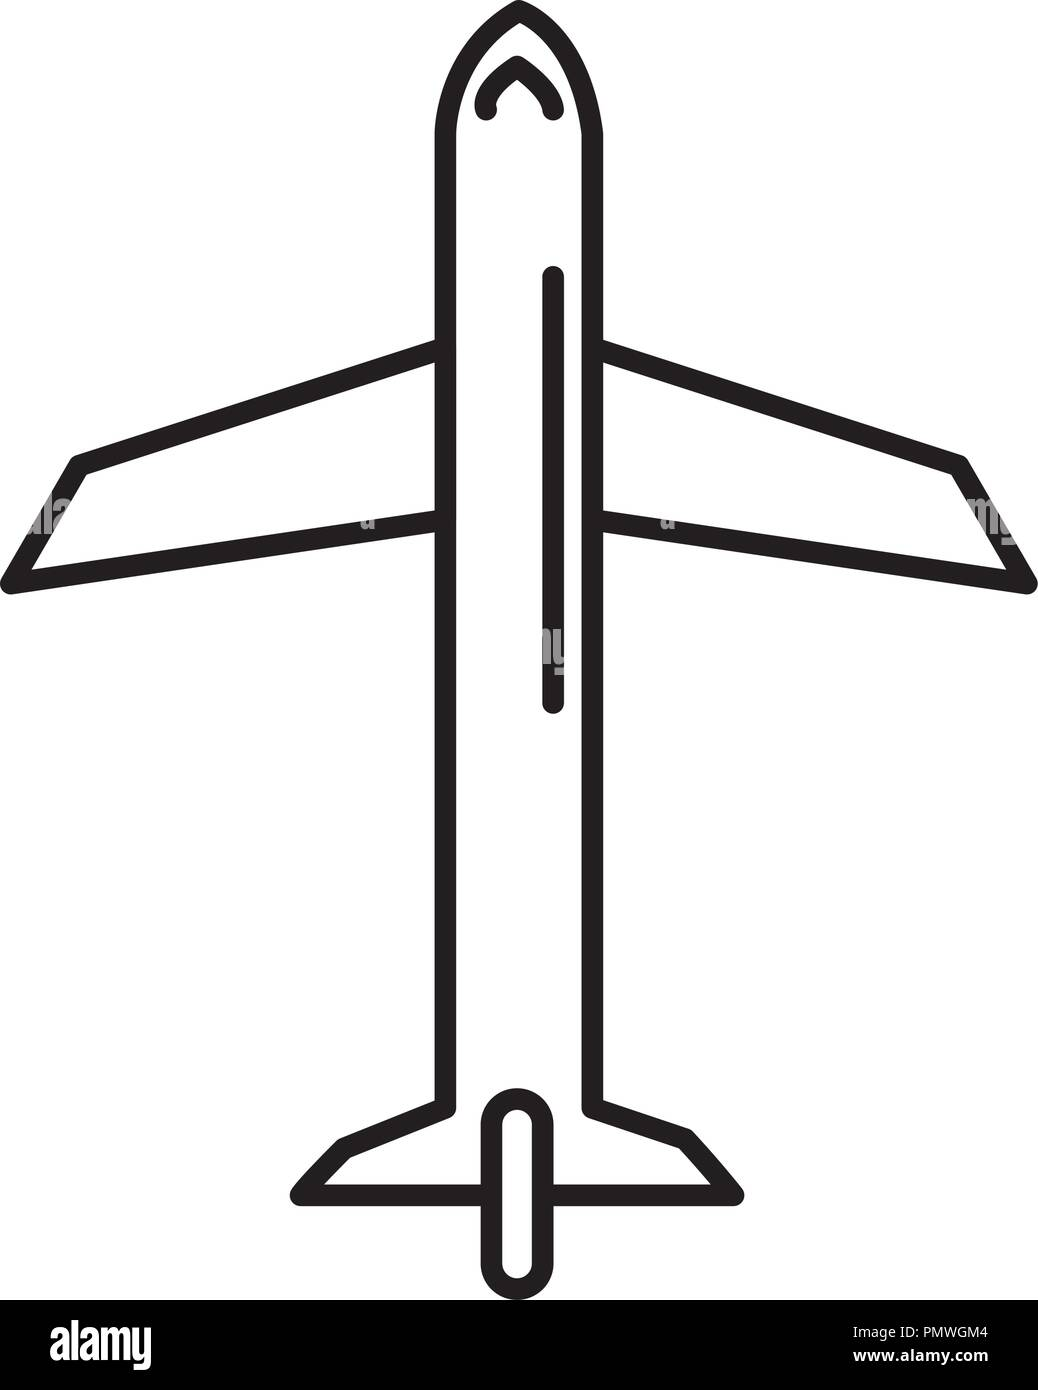 airplane flying isolated icon - Stock Image